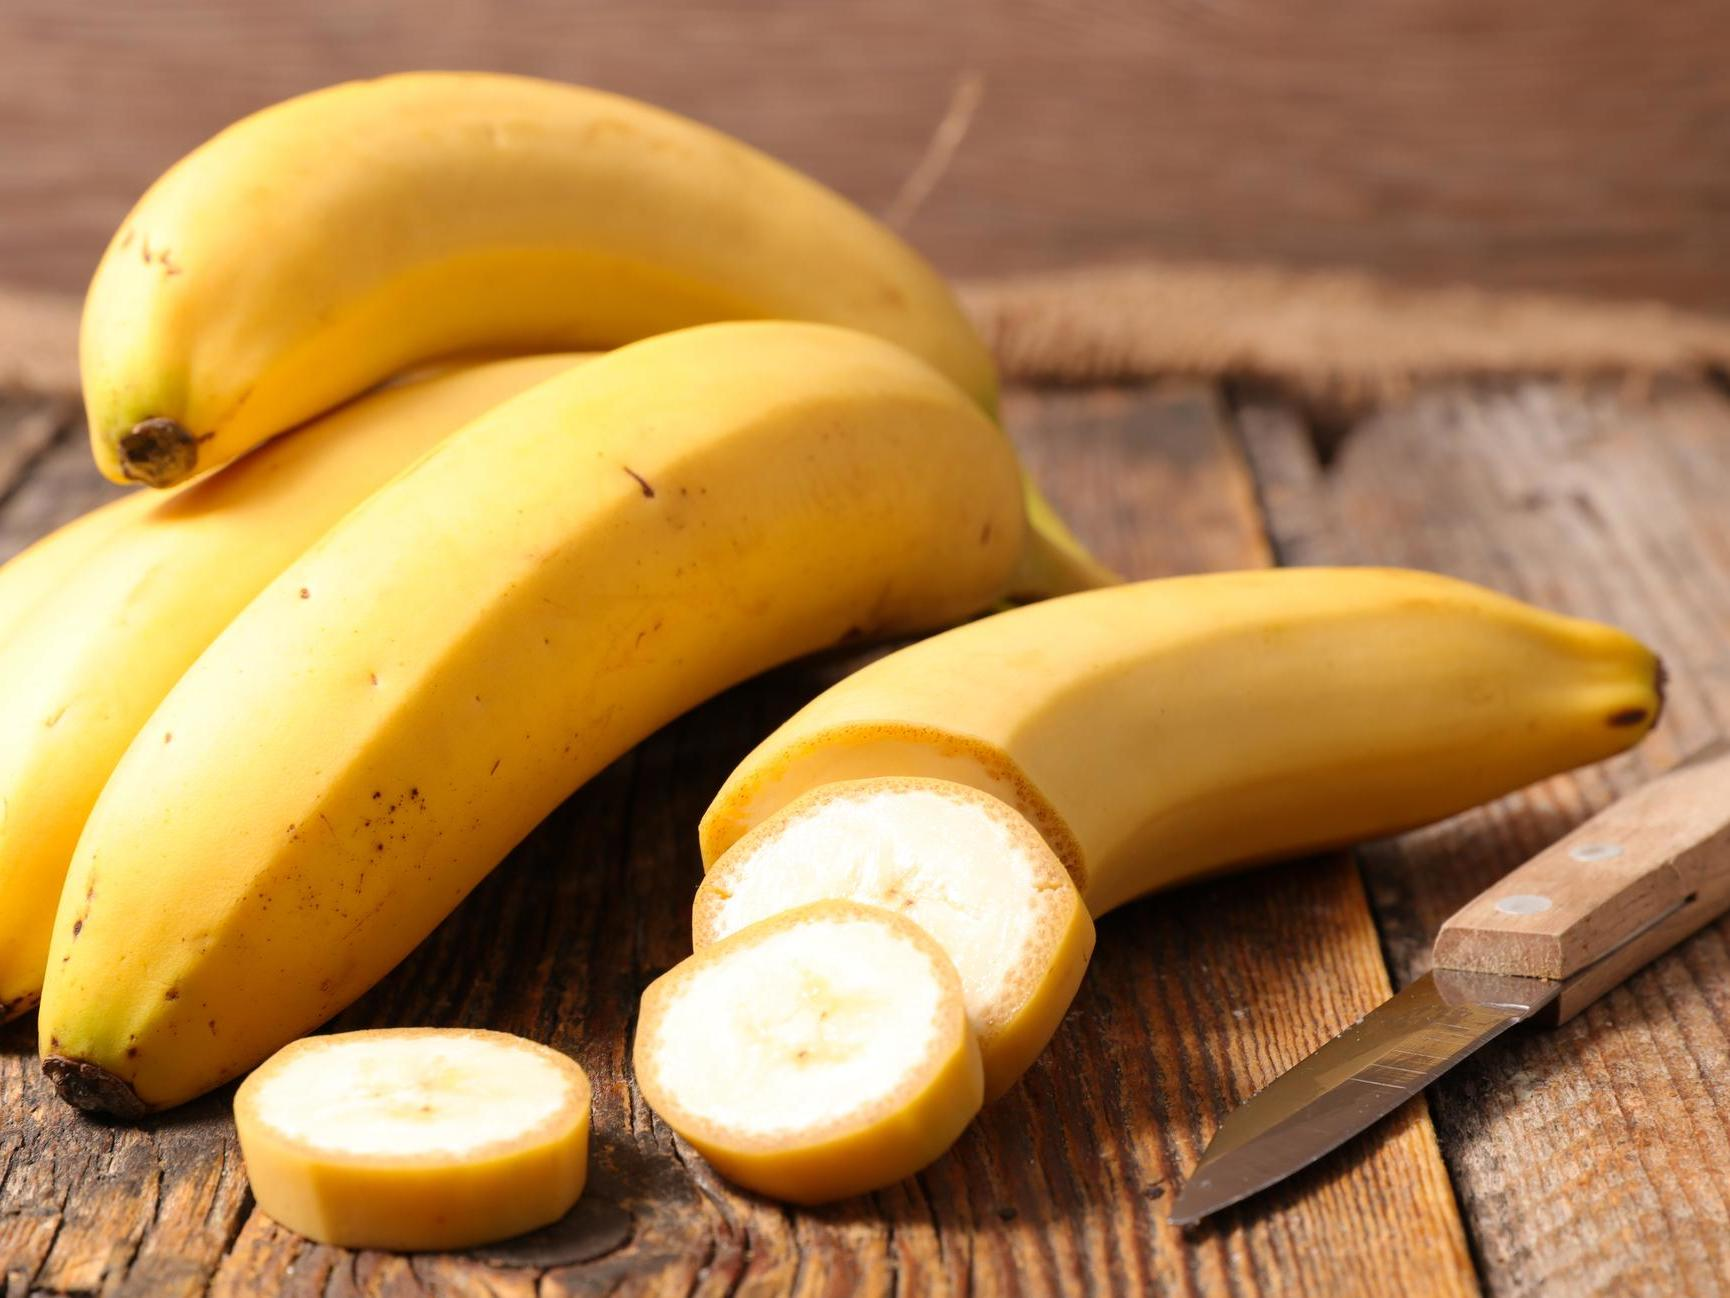 Climate change could see significant decline in banana production by 2050 1